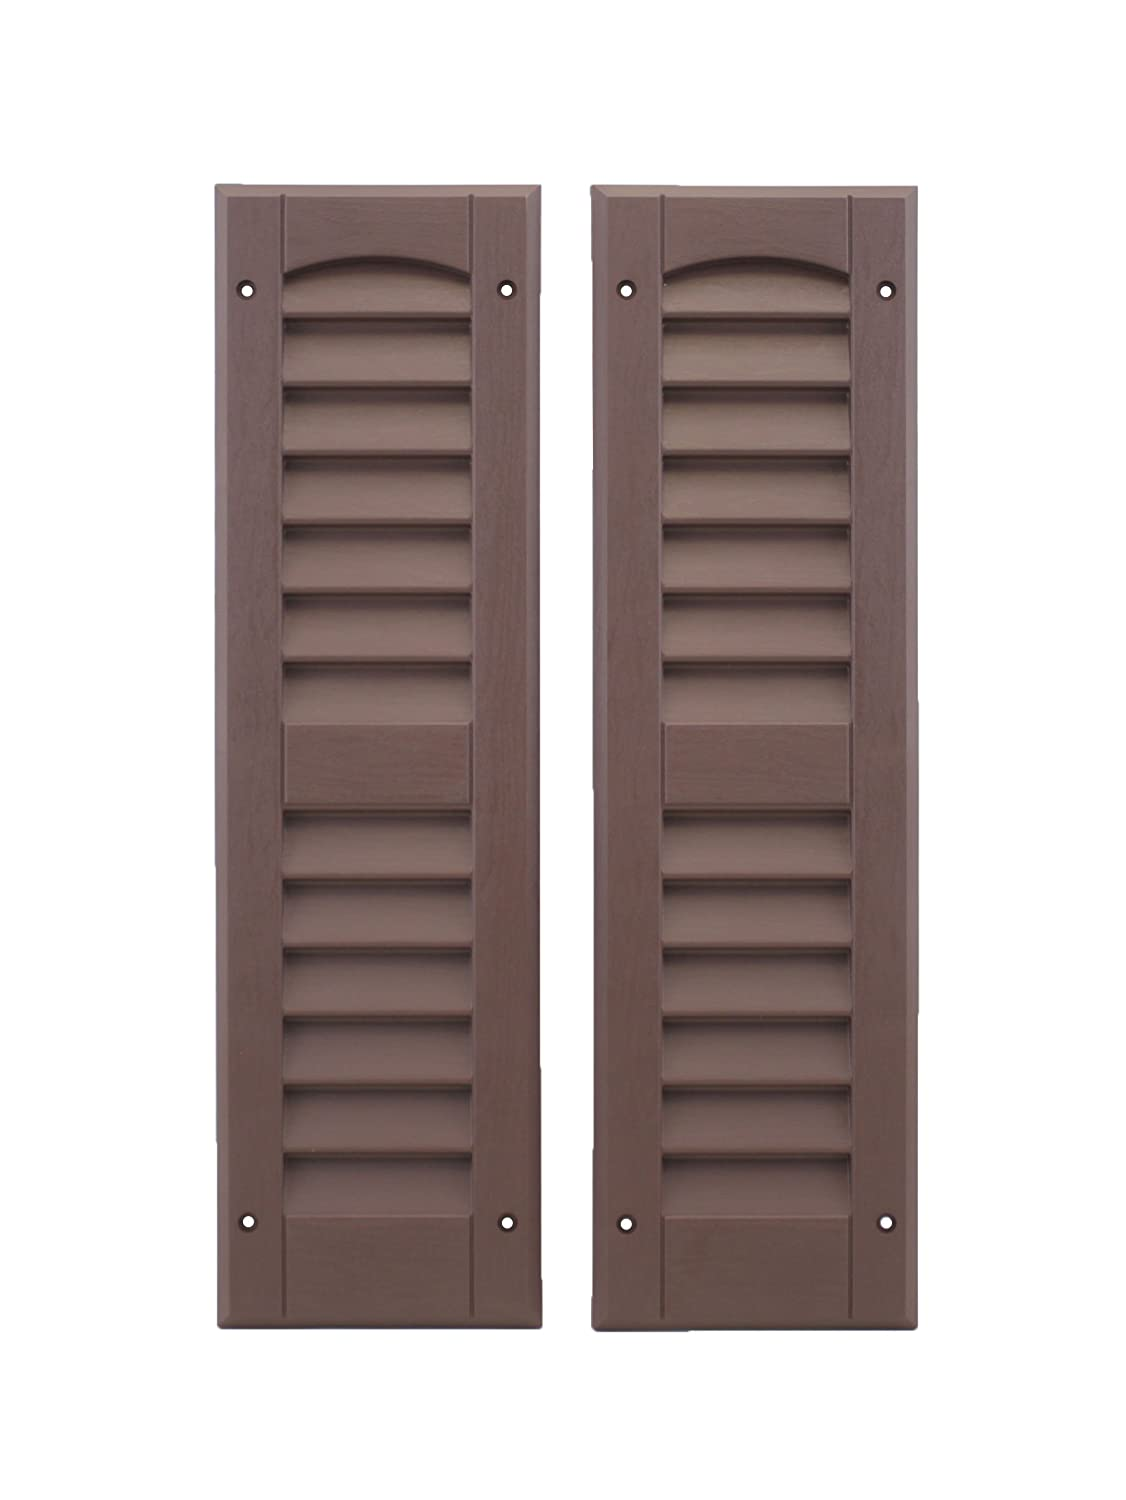 Louvered Shed Shutter or Playhouse Shutter, Brown 6